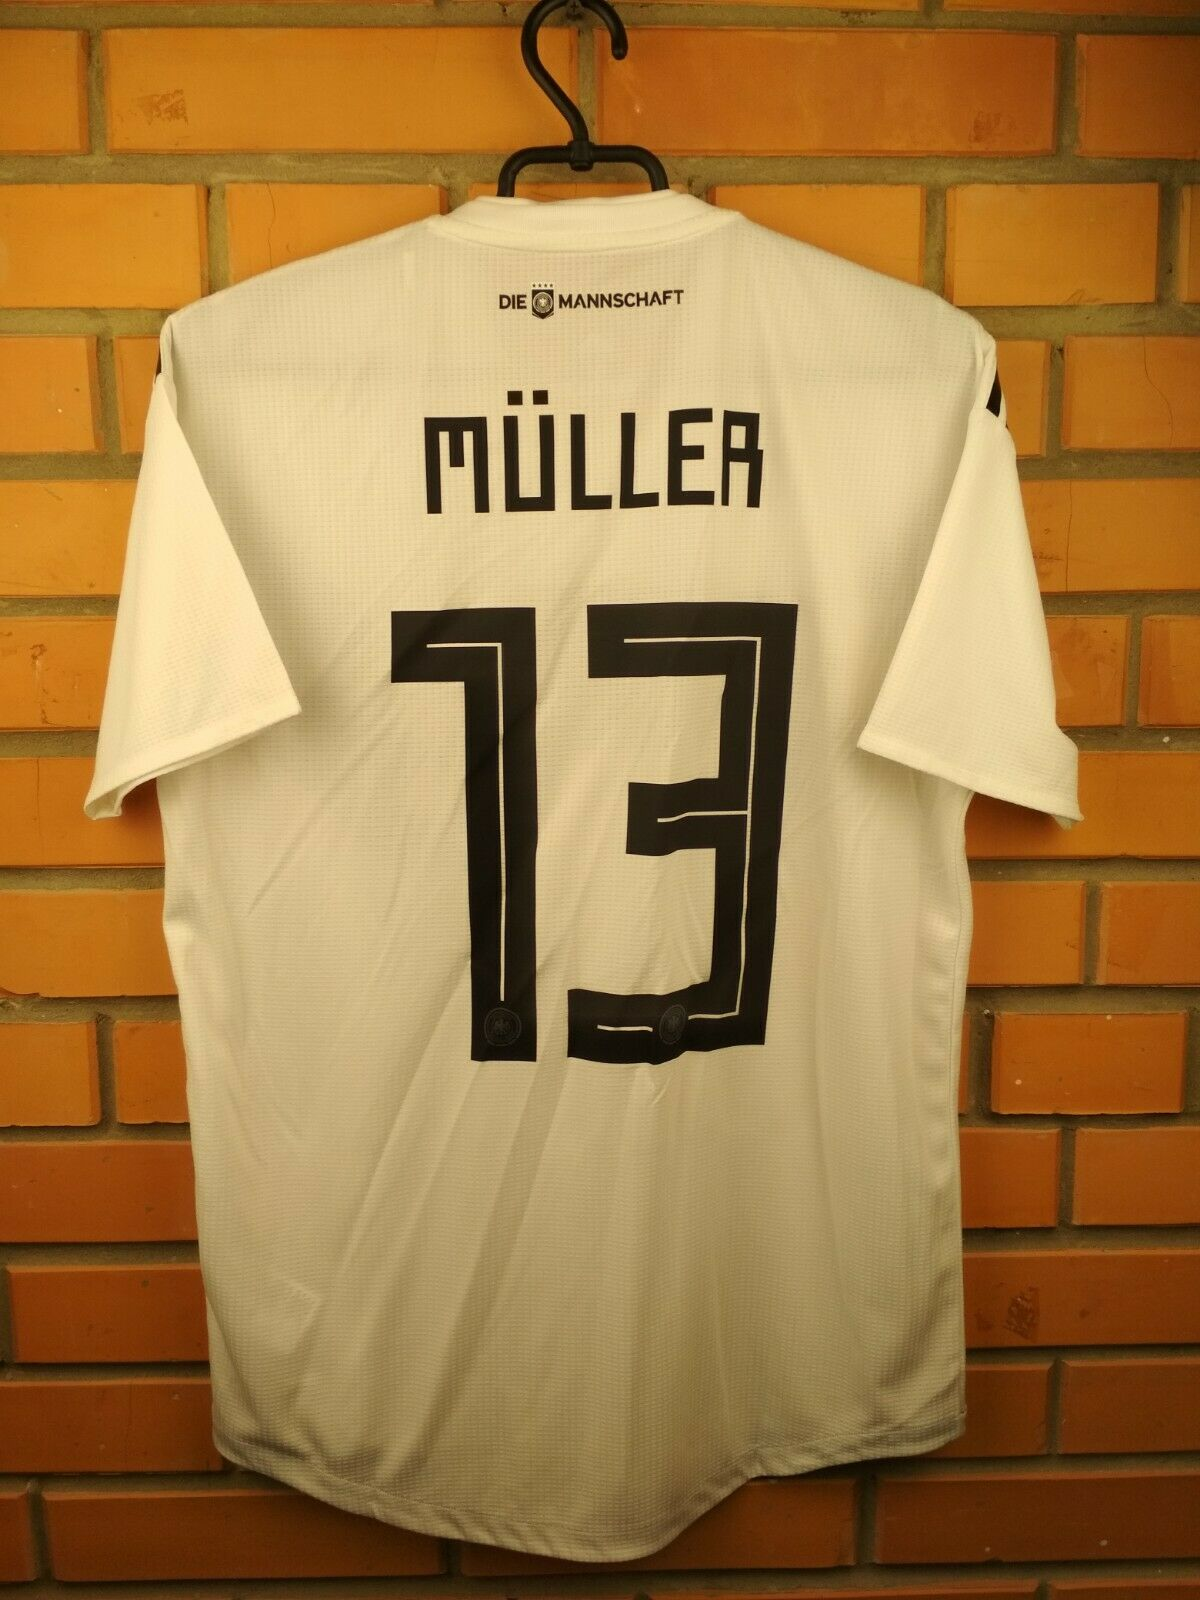 Muller Germany authentic jersey medium 2019 home shirt BR7313 soccer Adidas